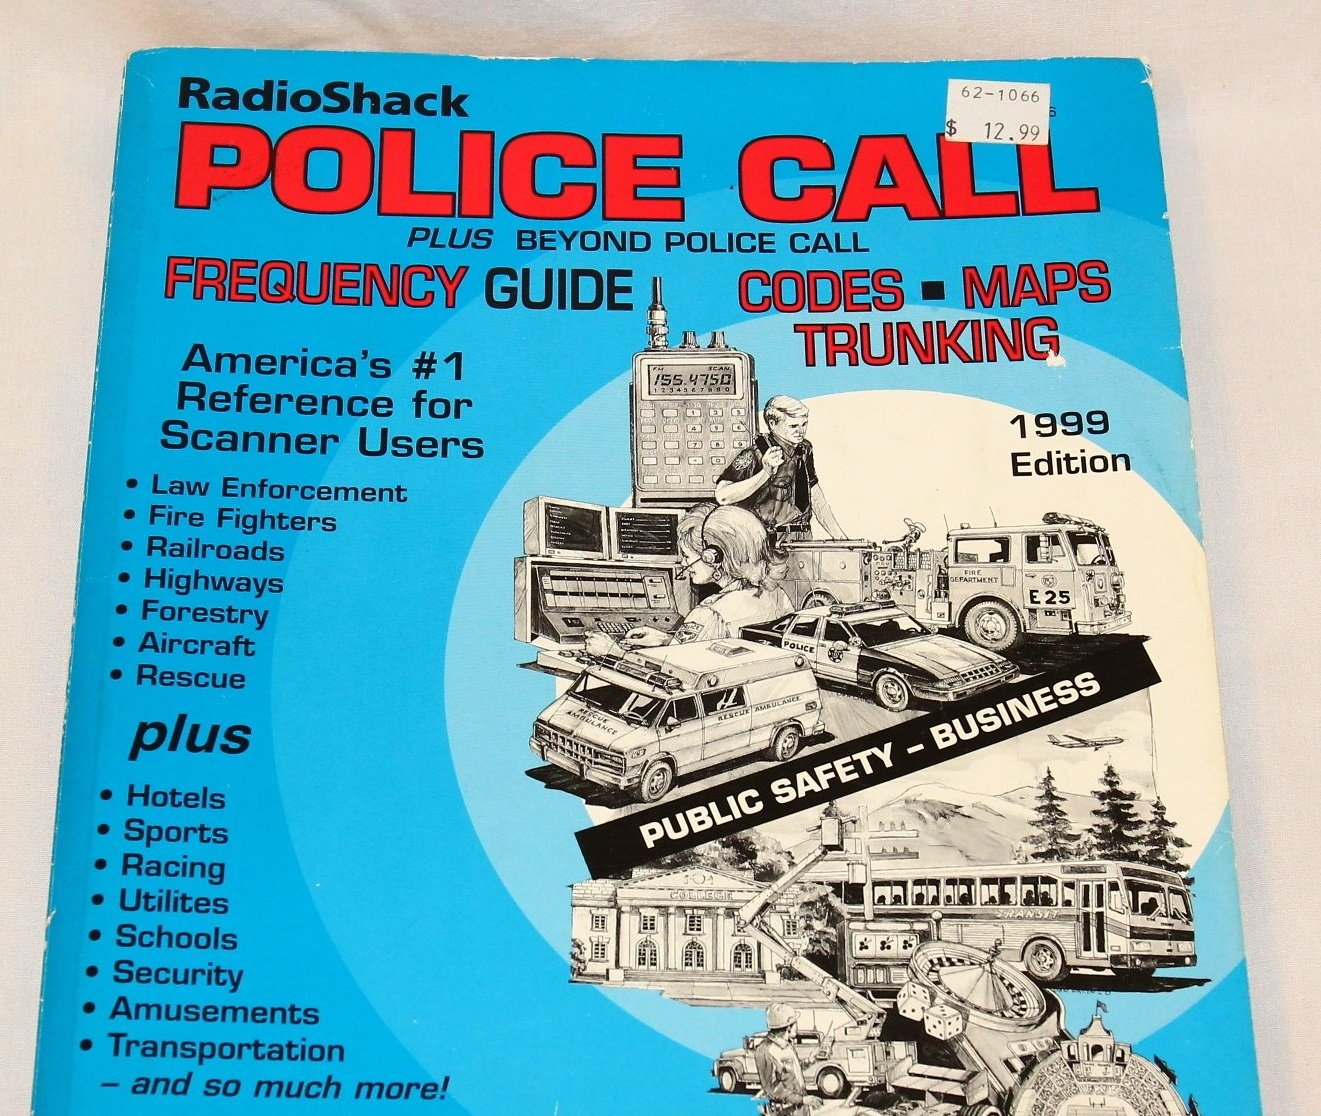 Radio Shack Police Call Plus Beyond Police Call Frequency